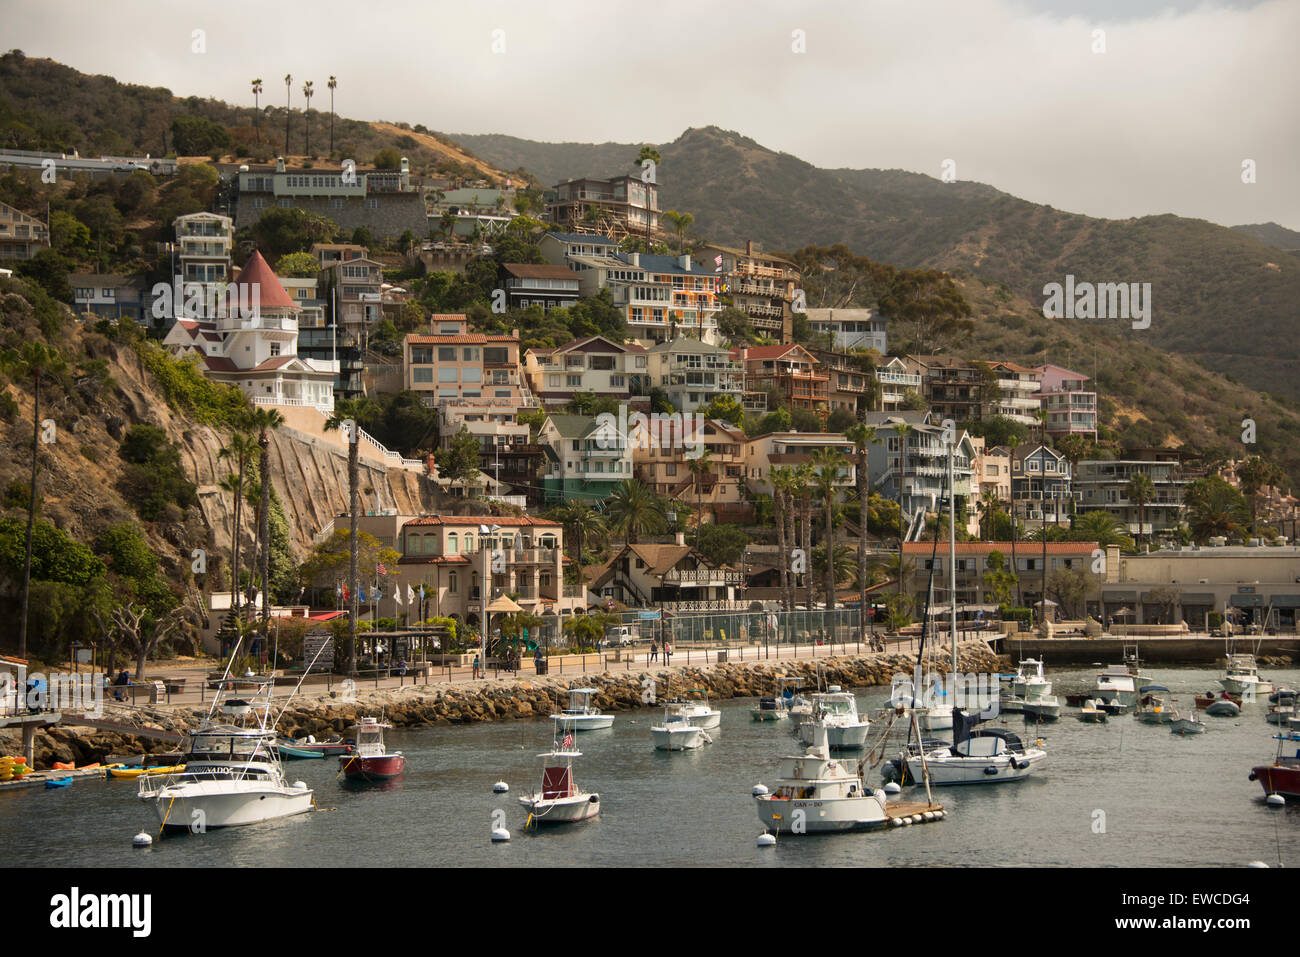 Avalon Harbor Catalina island off the coast of Southern California USA - Stock Image